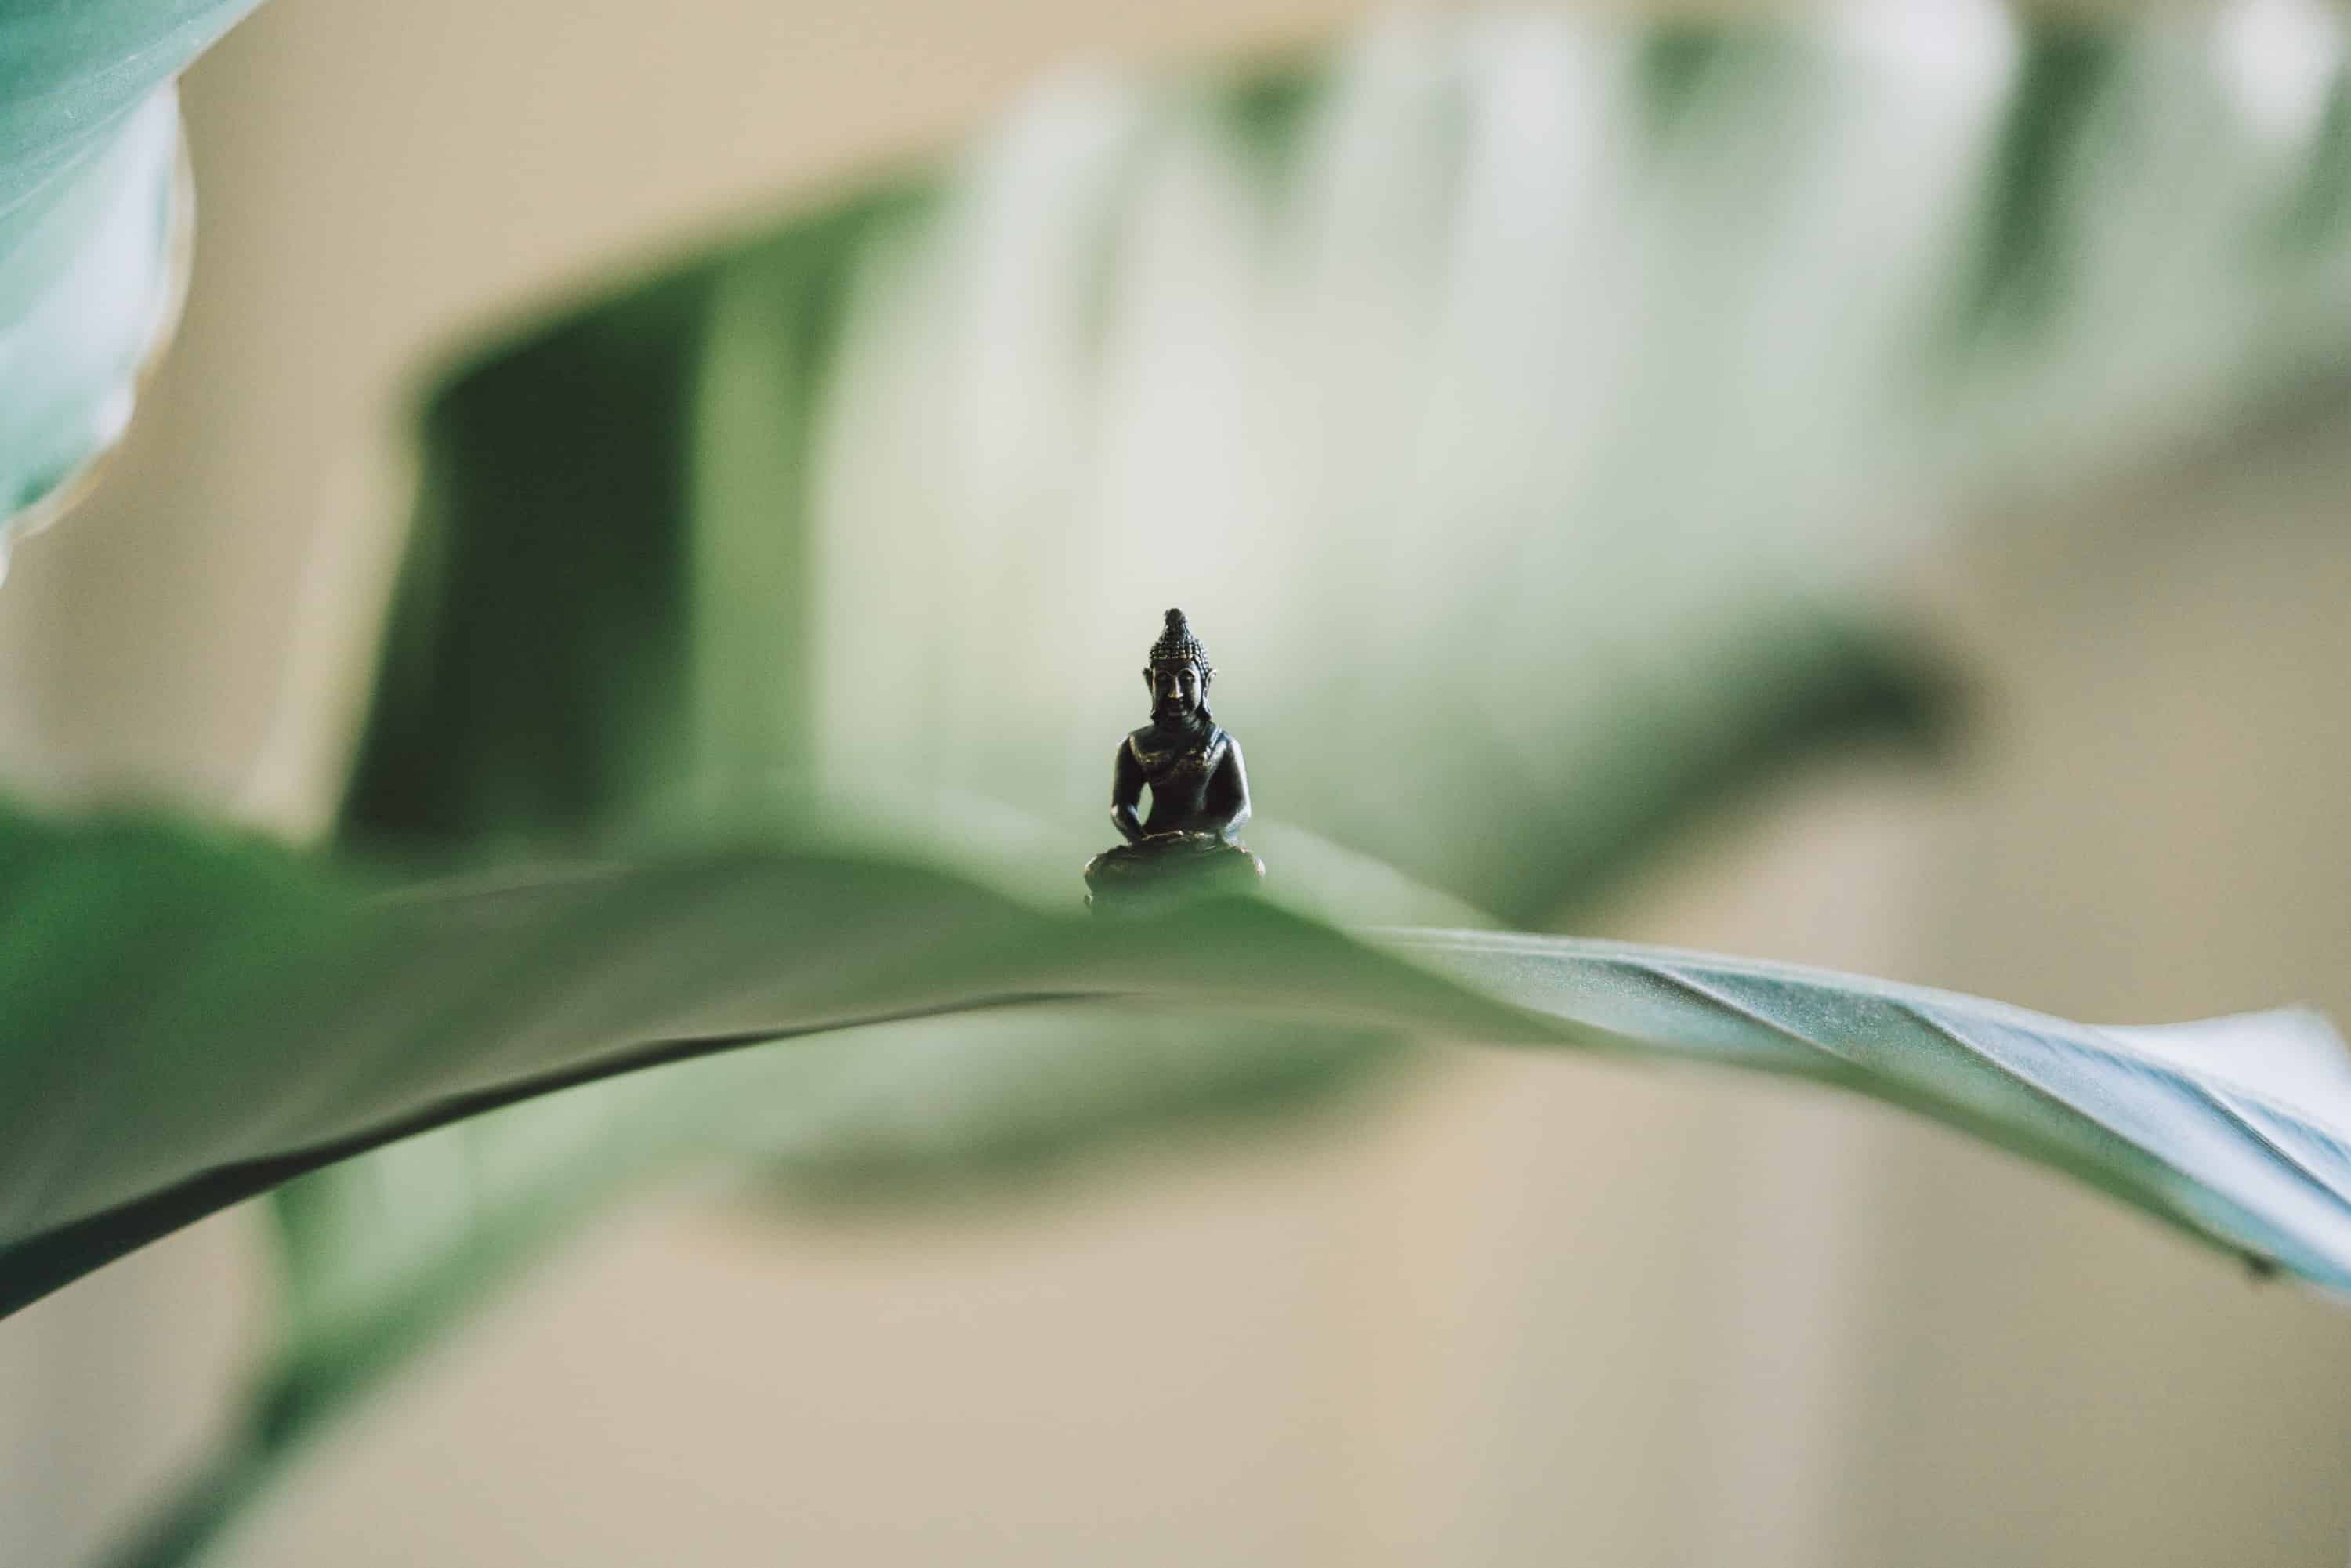 tiny buddha figure surrounded by plants